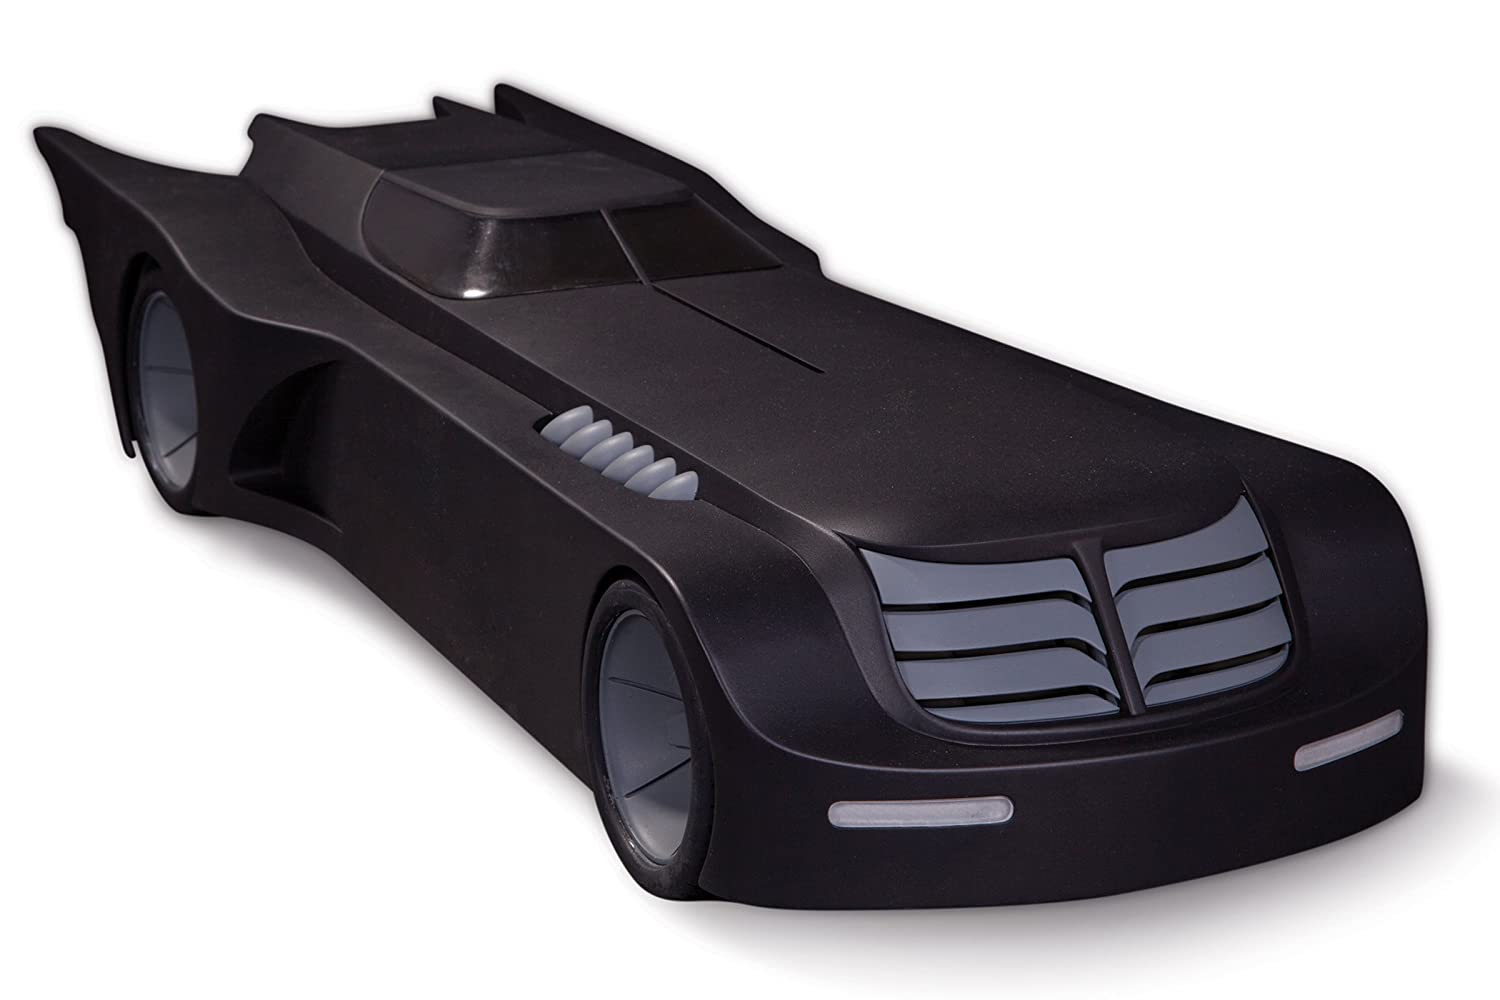 DC Collectibles - Vehículo Batmobile, 61 cm (dccapr150335)